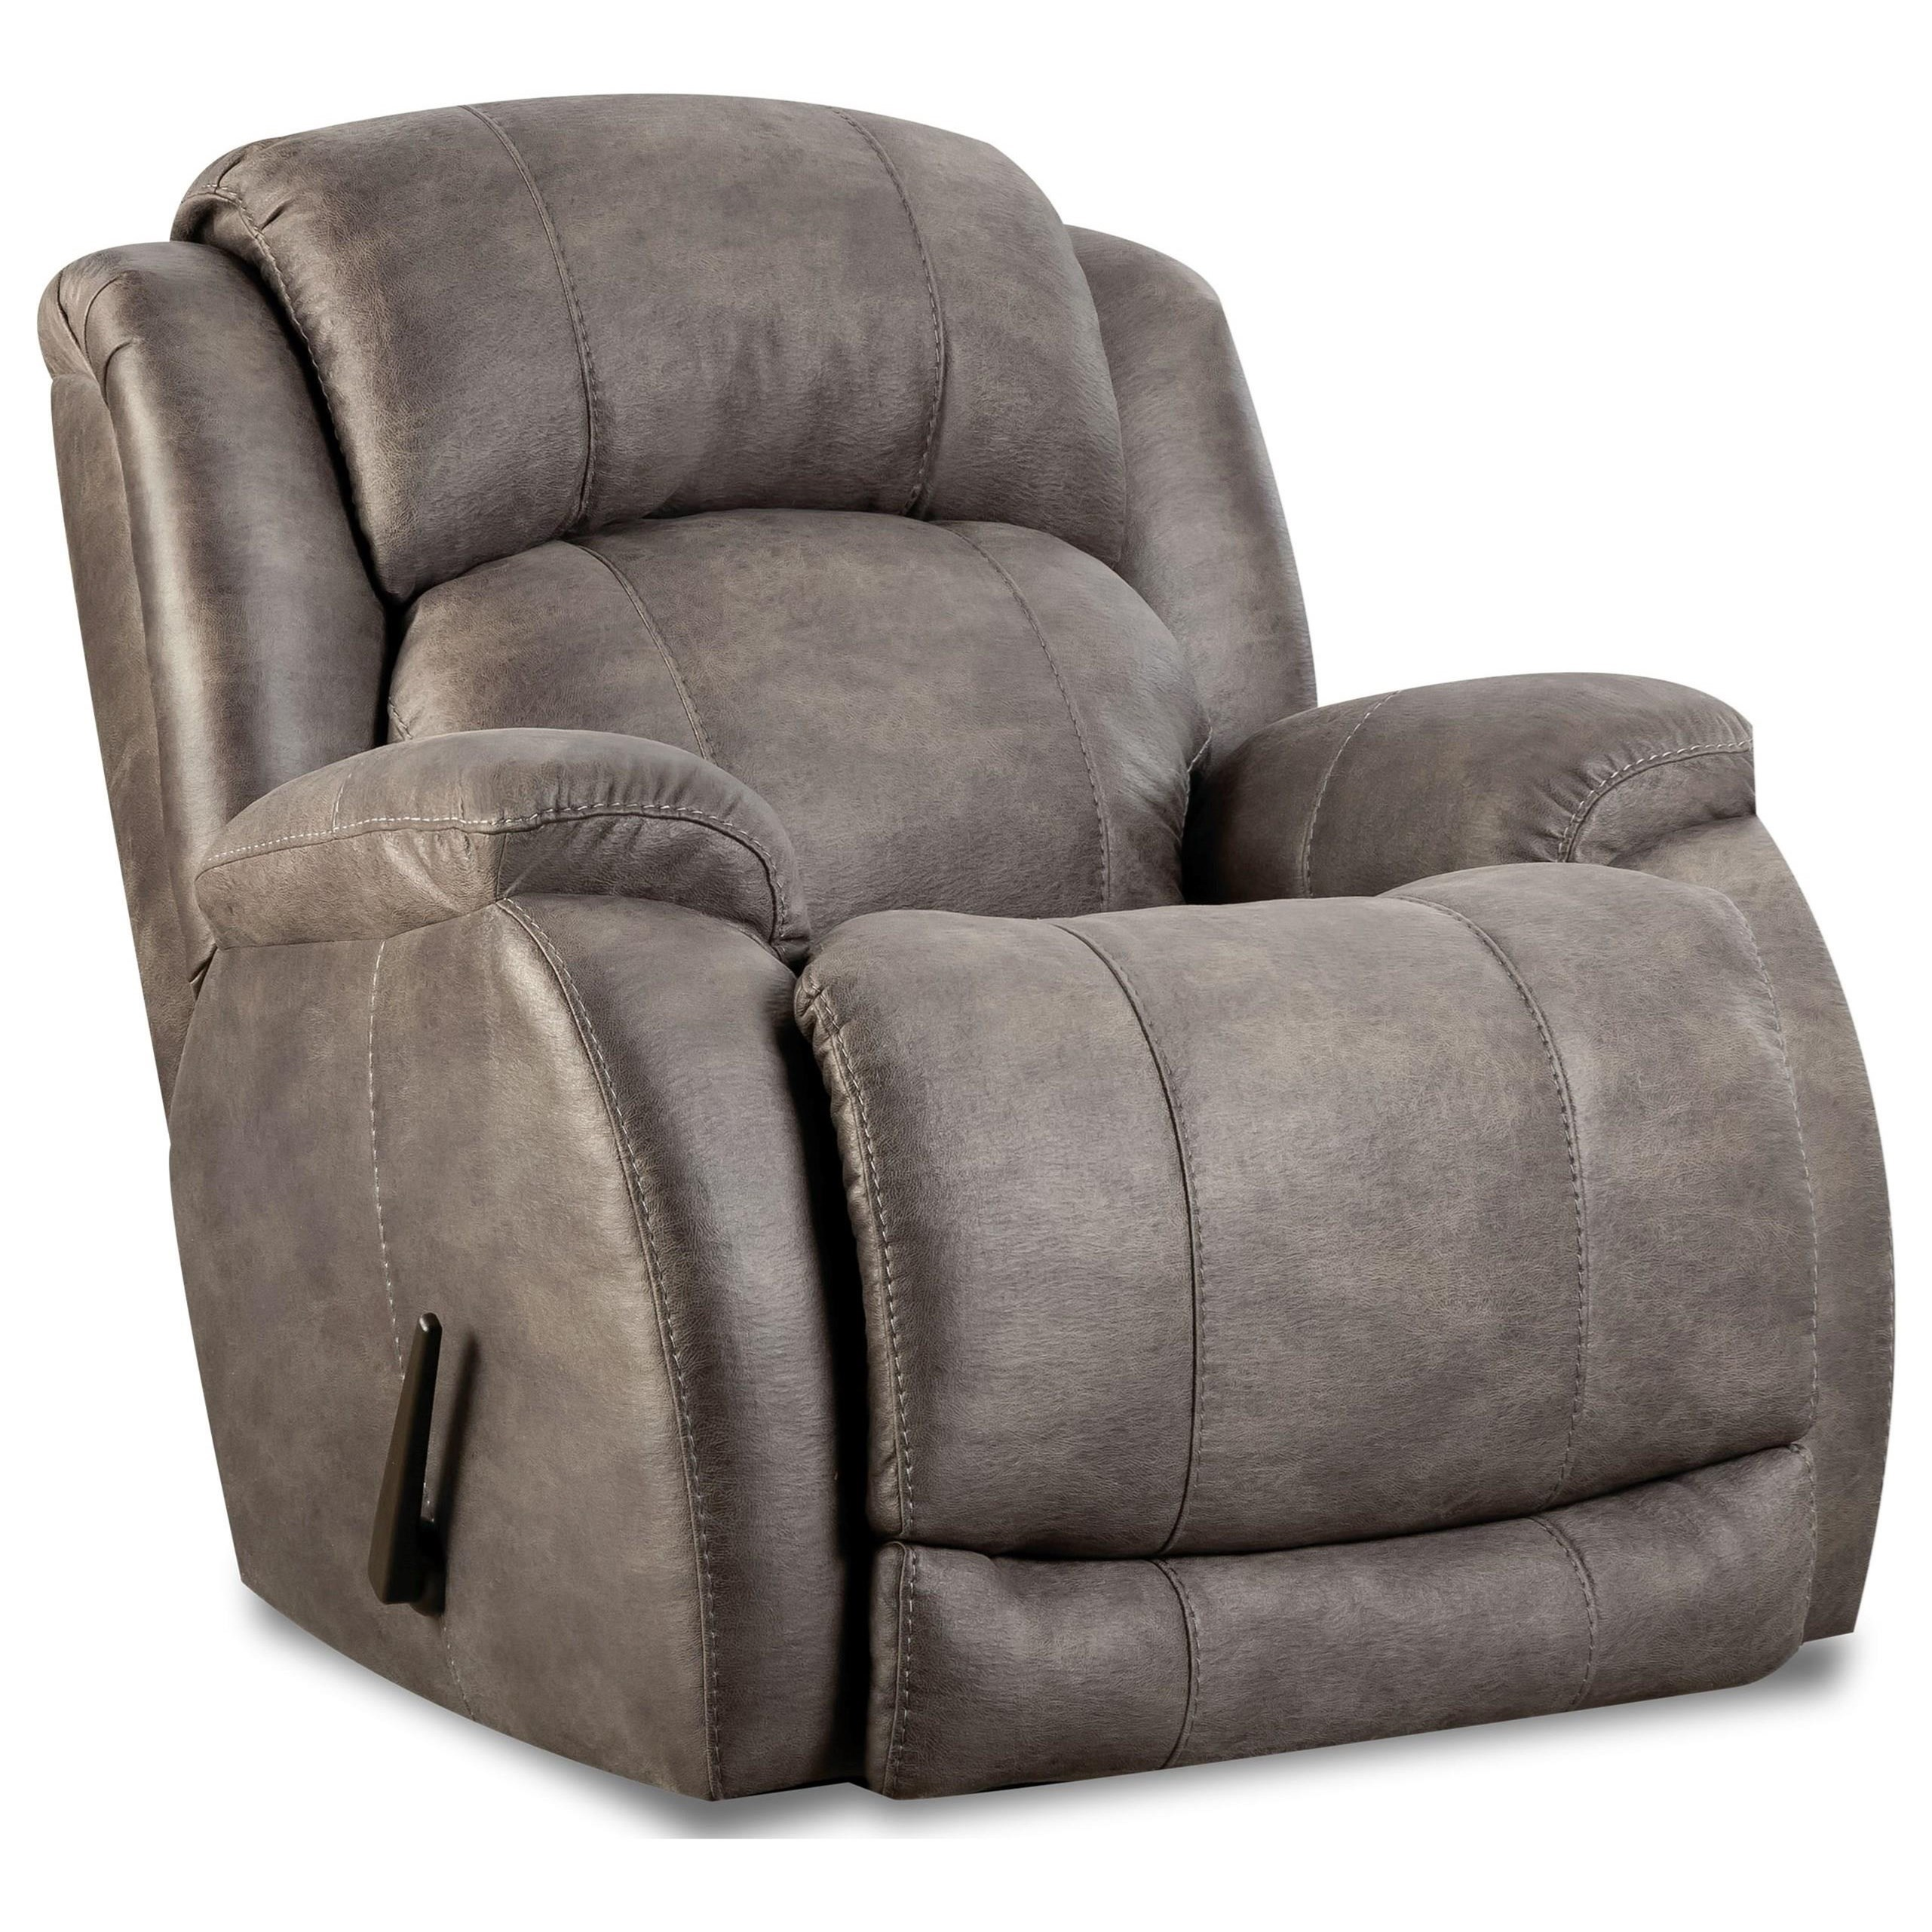 Denali Rocker Recliner by HomeStretch at Turk Furniture